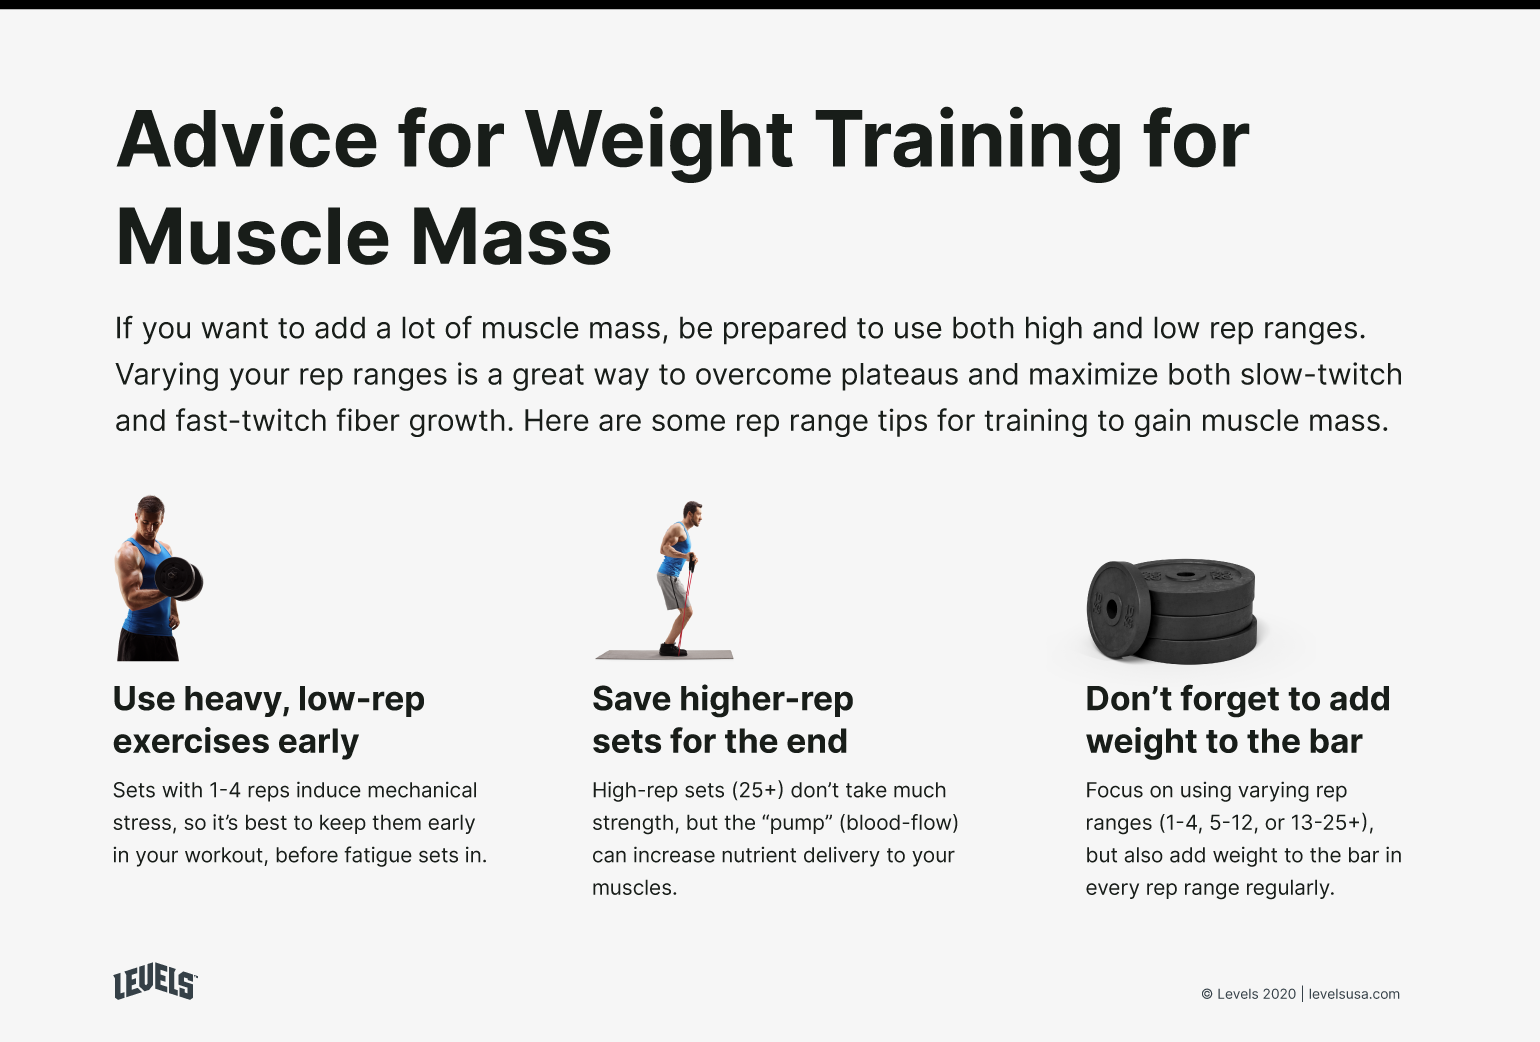 High Reps vs Low Reps - Advice For Weight Training For Muscle Mass Infographic